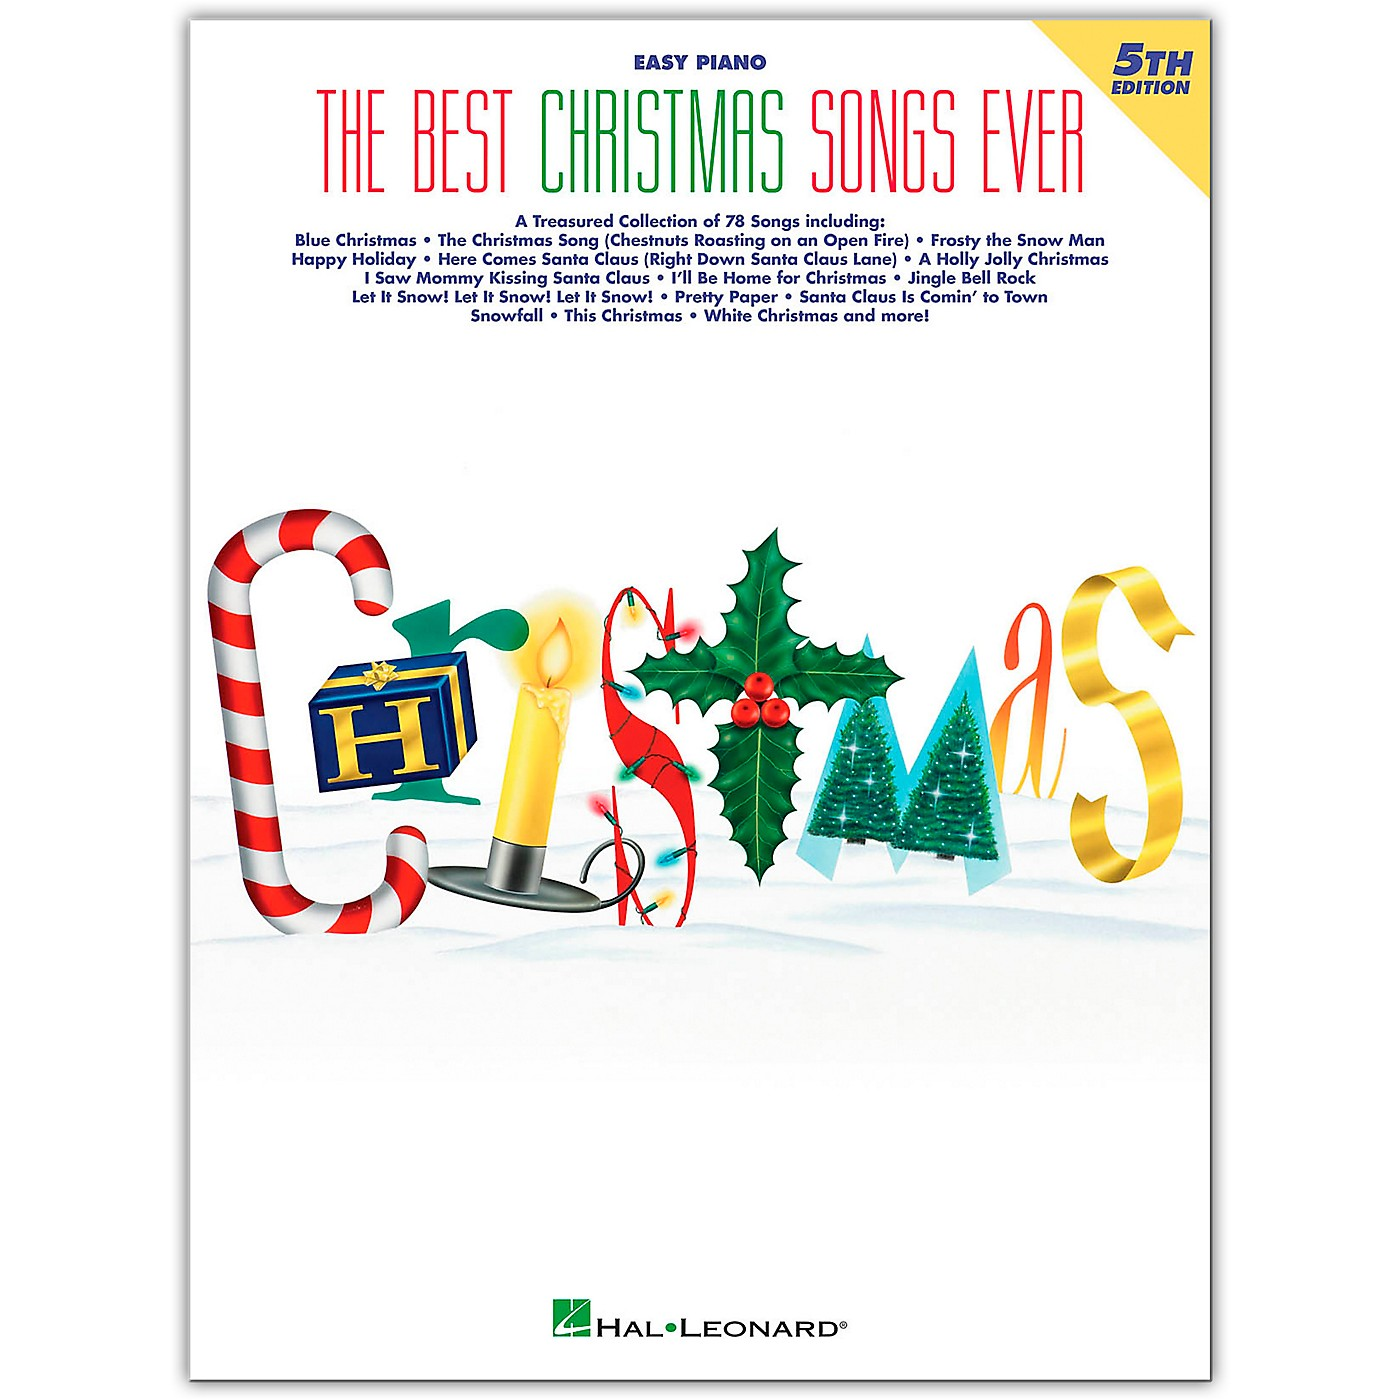 Hal Leonard Best Christmas Songs Ever, 5th Edition For Easy Piano thumbnail